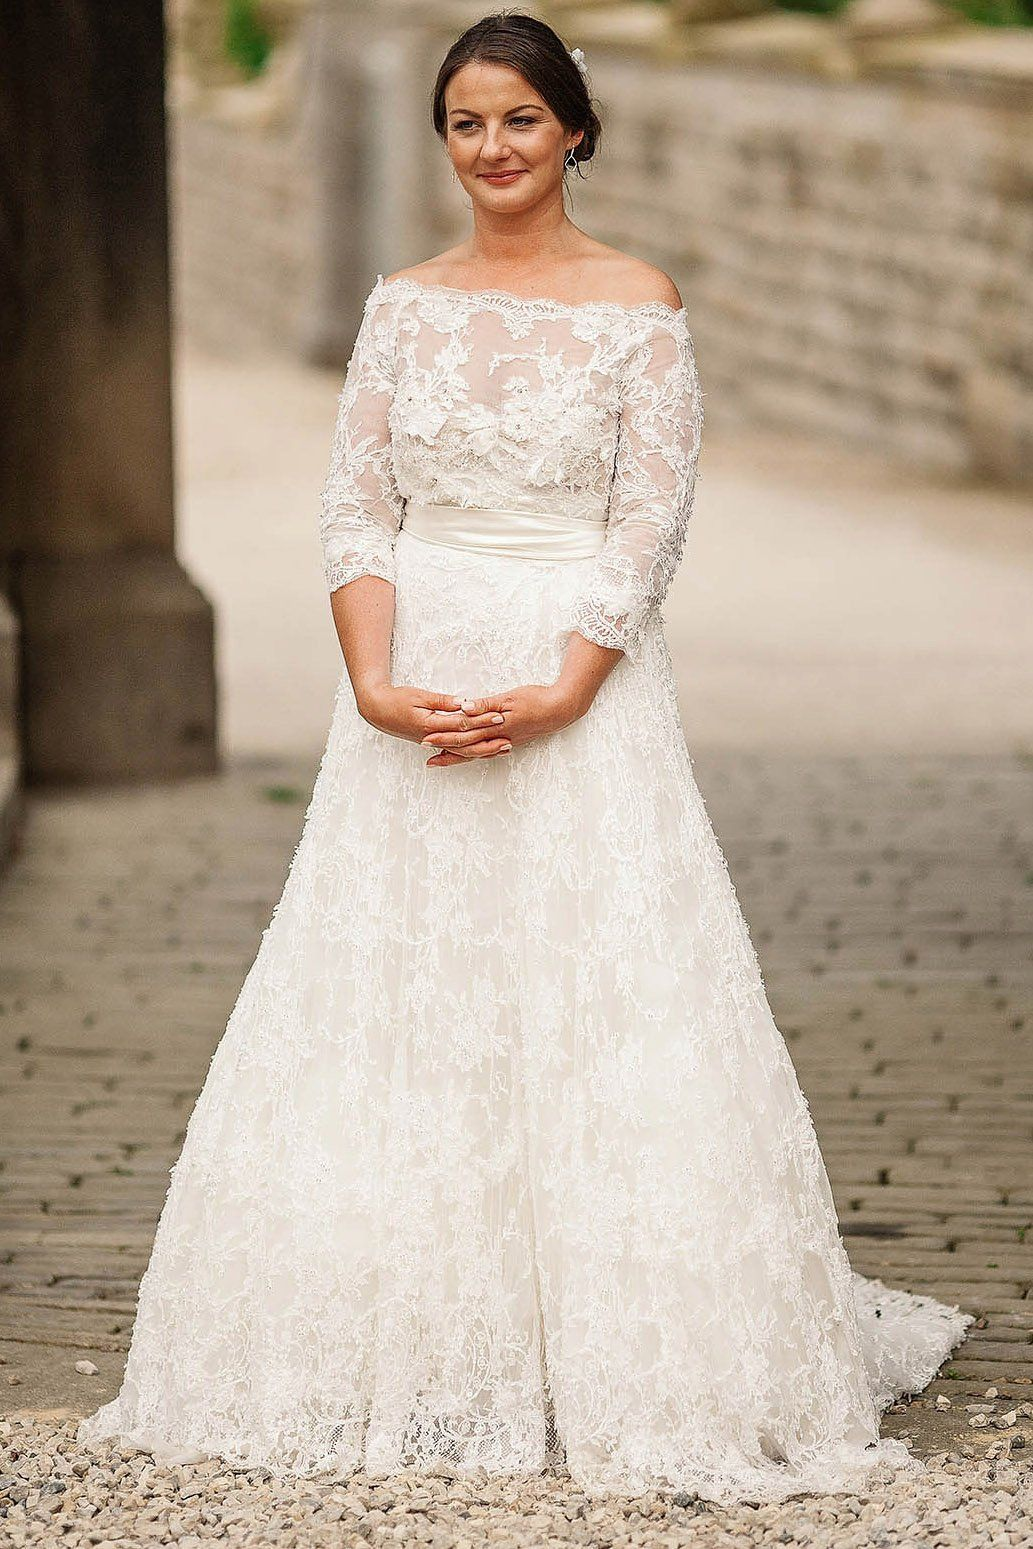 3 4 Sleeve Off The Shoulder A Line Sweep Train Lace Wedding Dress Jojobride Wedding Long Sleeve Wedding Dress Lace Wedding Dresses Nz Wedding Dresses Lace